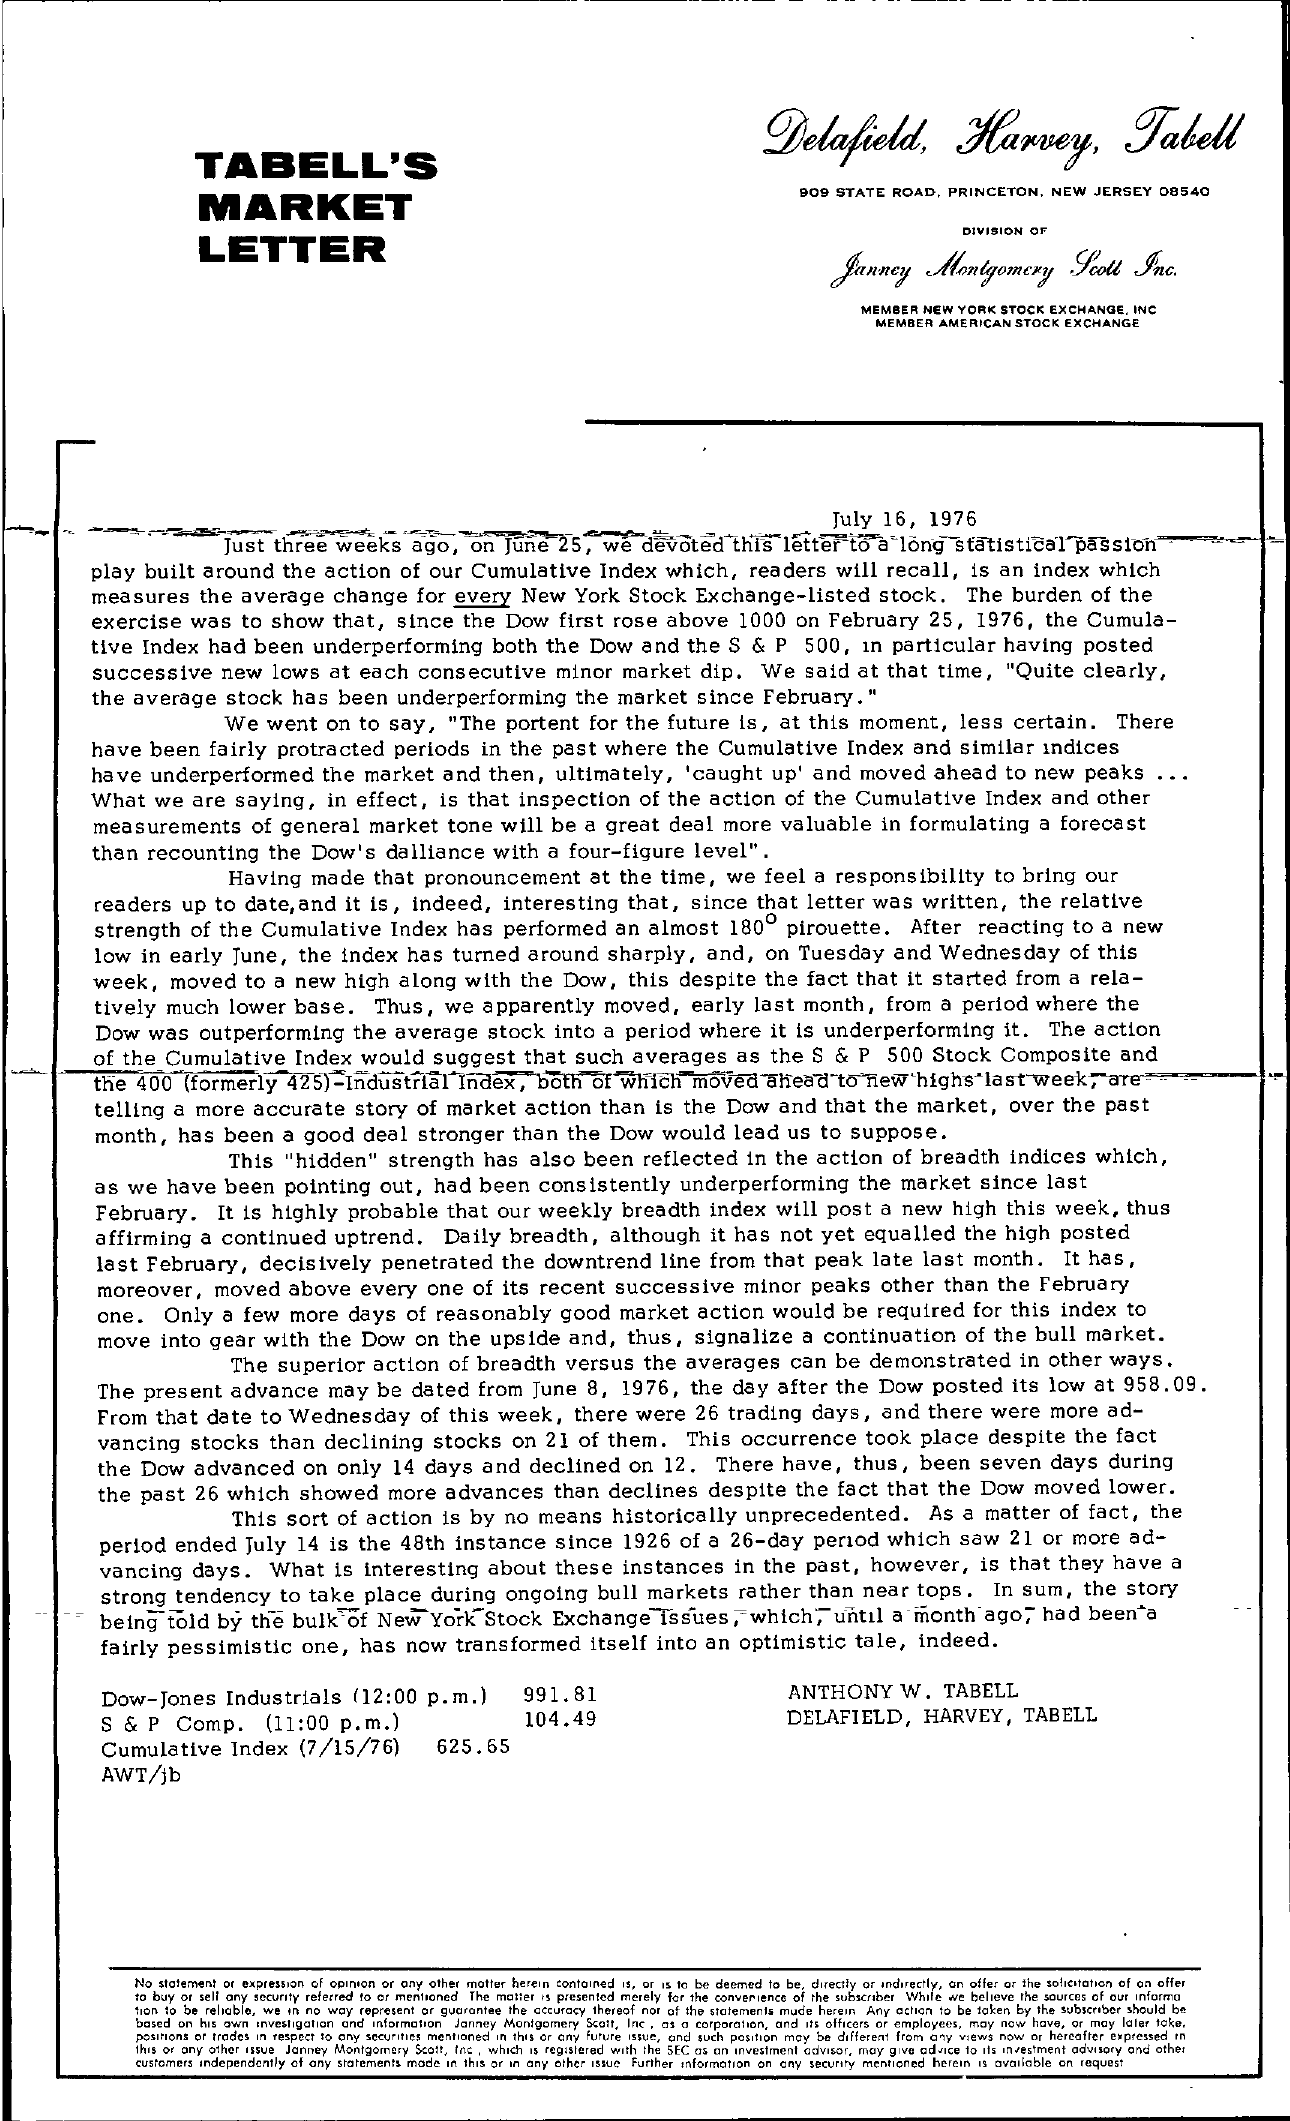 Tabell's Market Letter - July 16, 1976